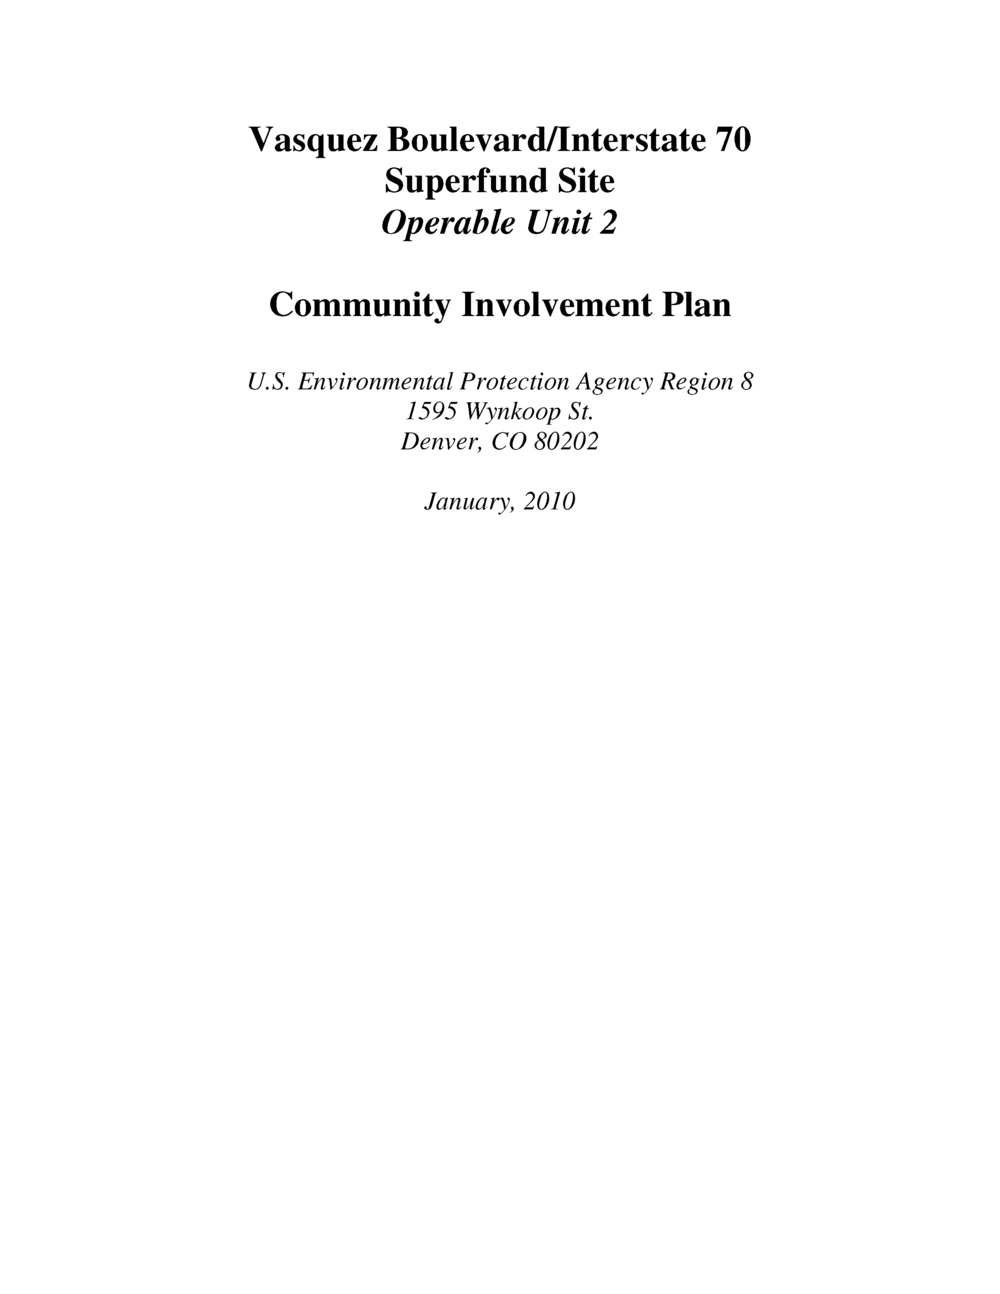 Superfund Community Involvement